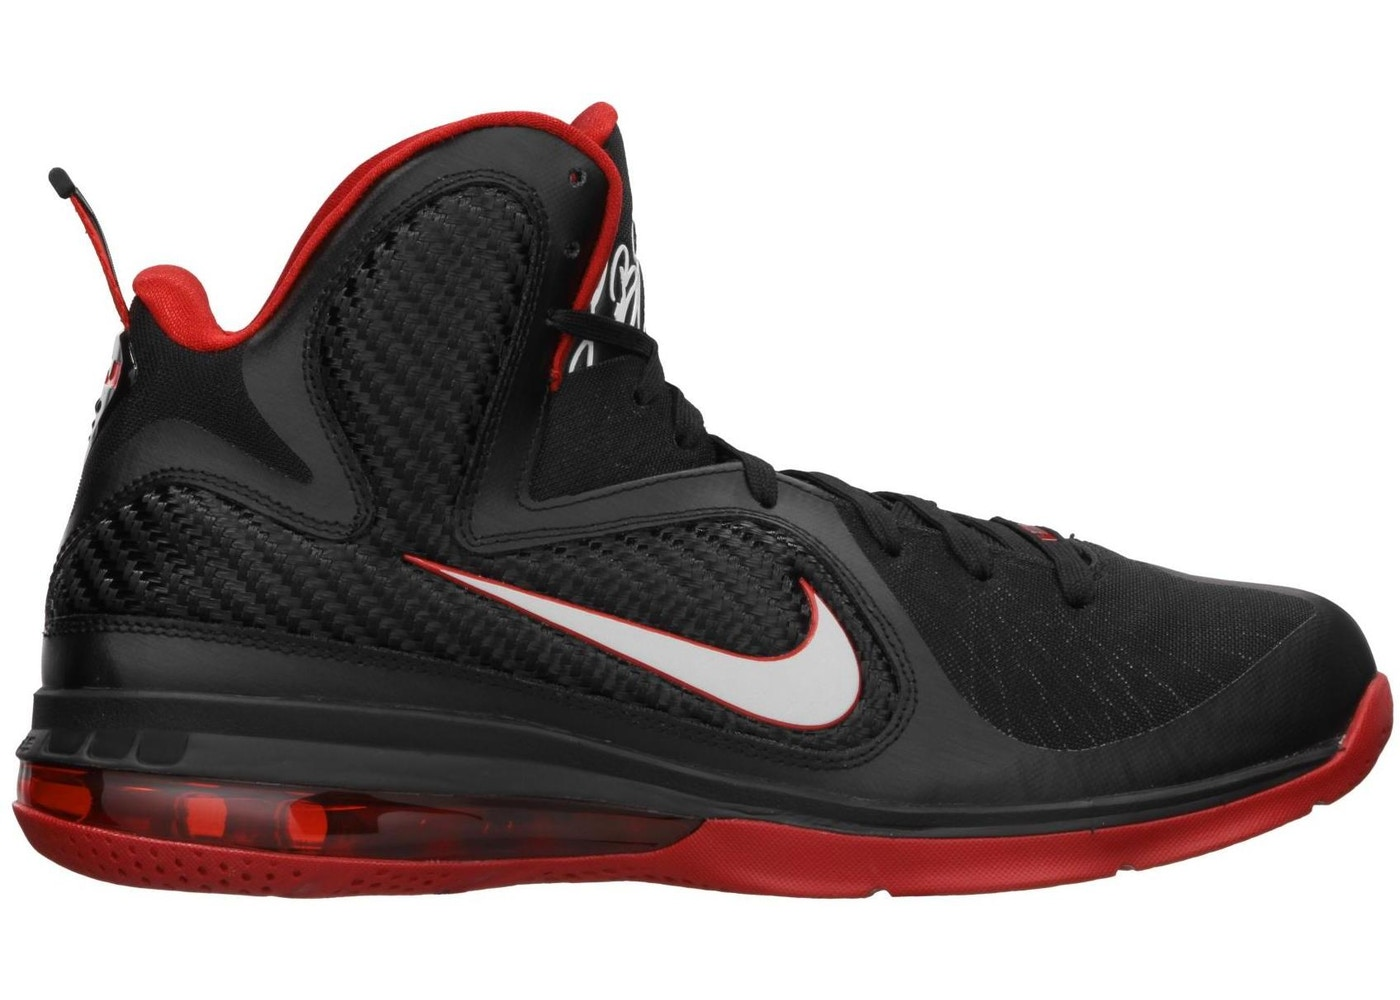 hot sales 5ef74 c6a4e LeBron 9 Miami Heat Away